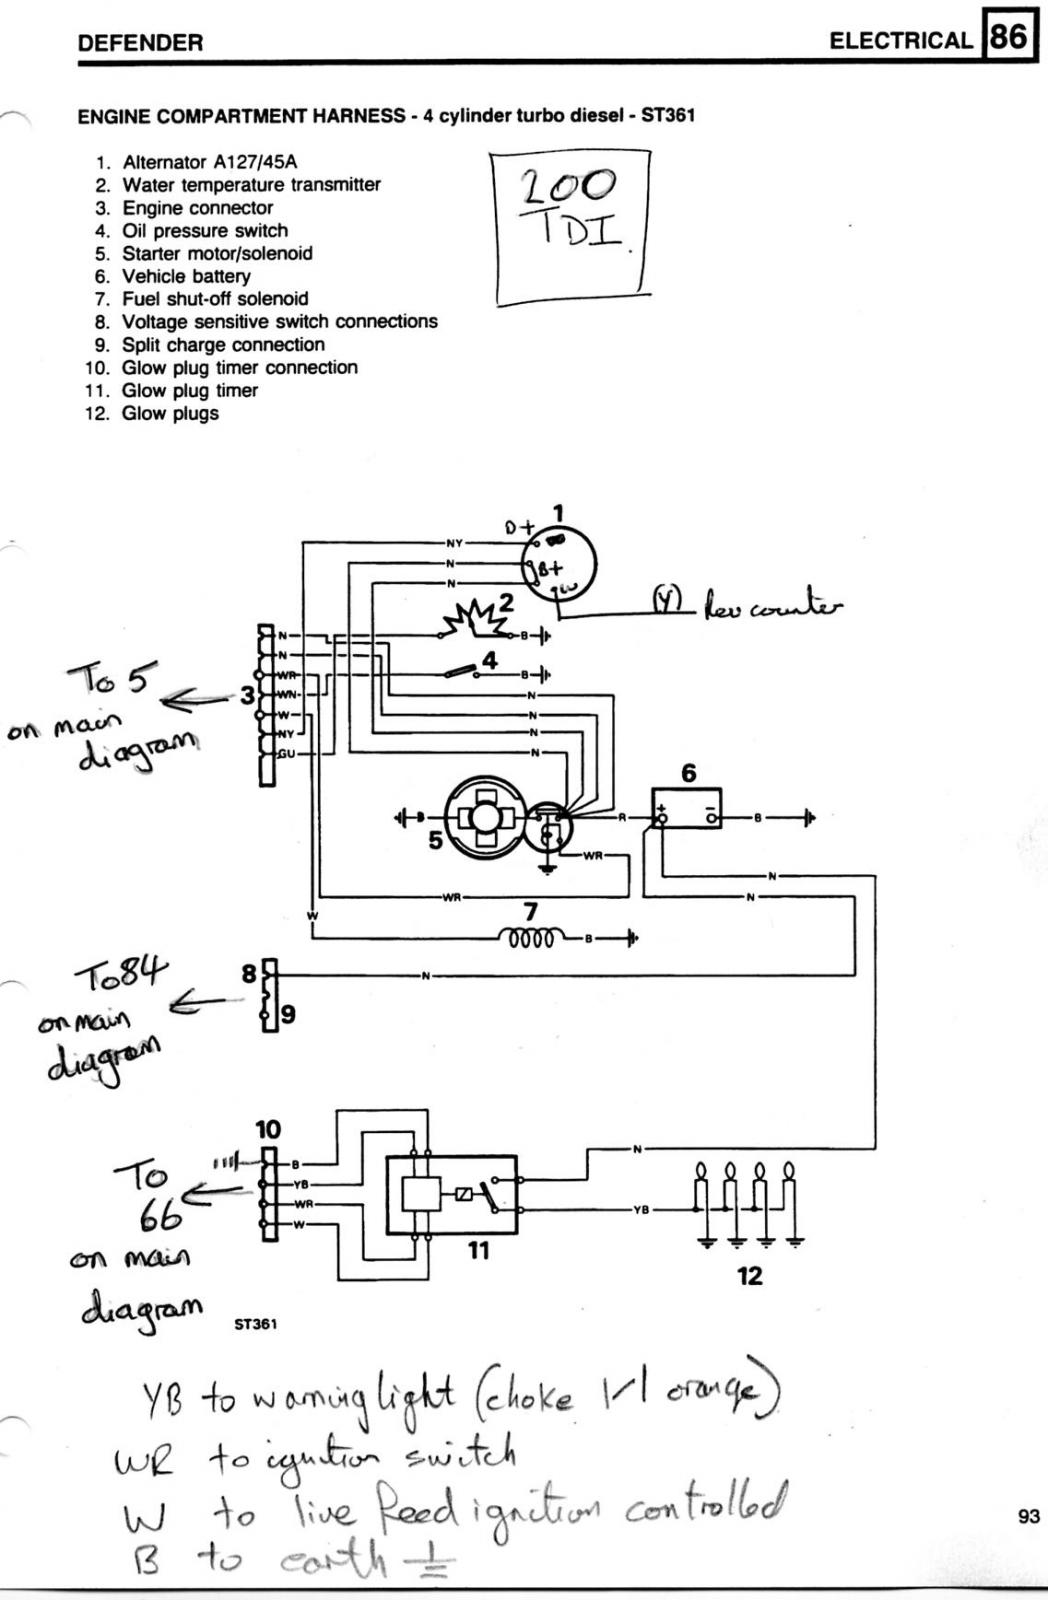 Defender Wiring Defender Forum Lr4x4 The Land Rover Forum Defender 110 200  Tdi Engine Wiring Diagram